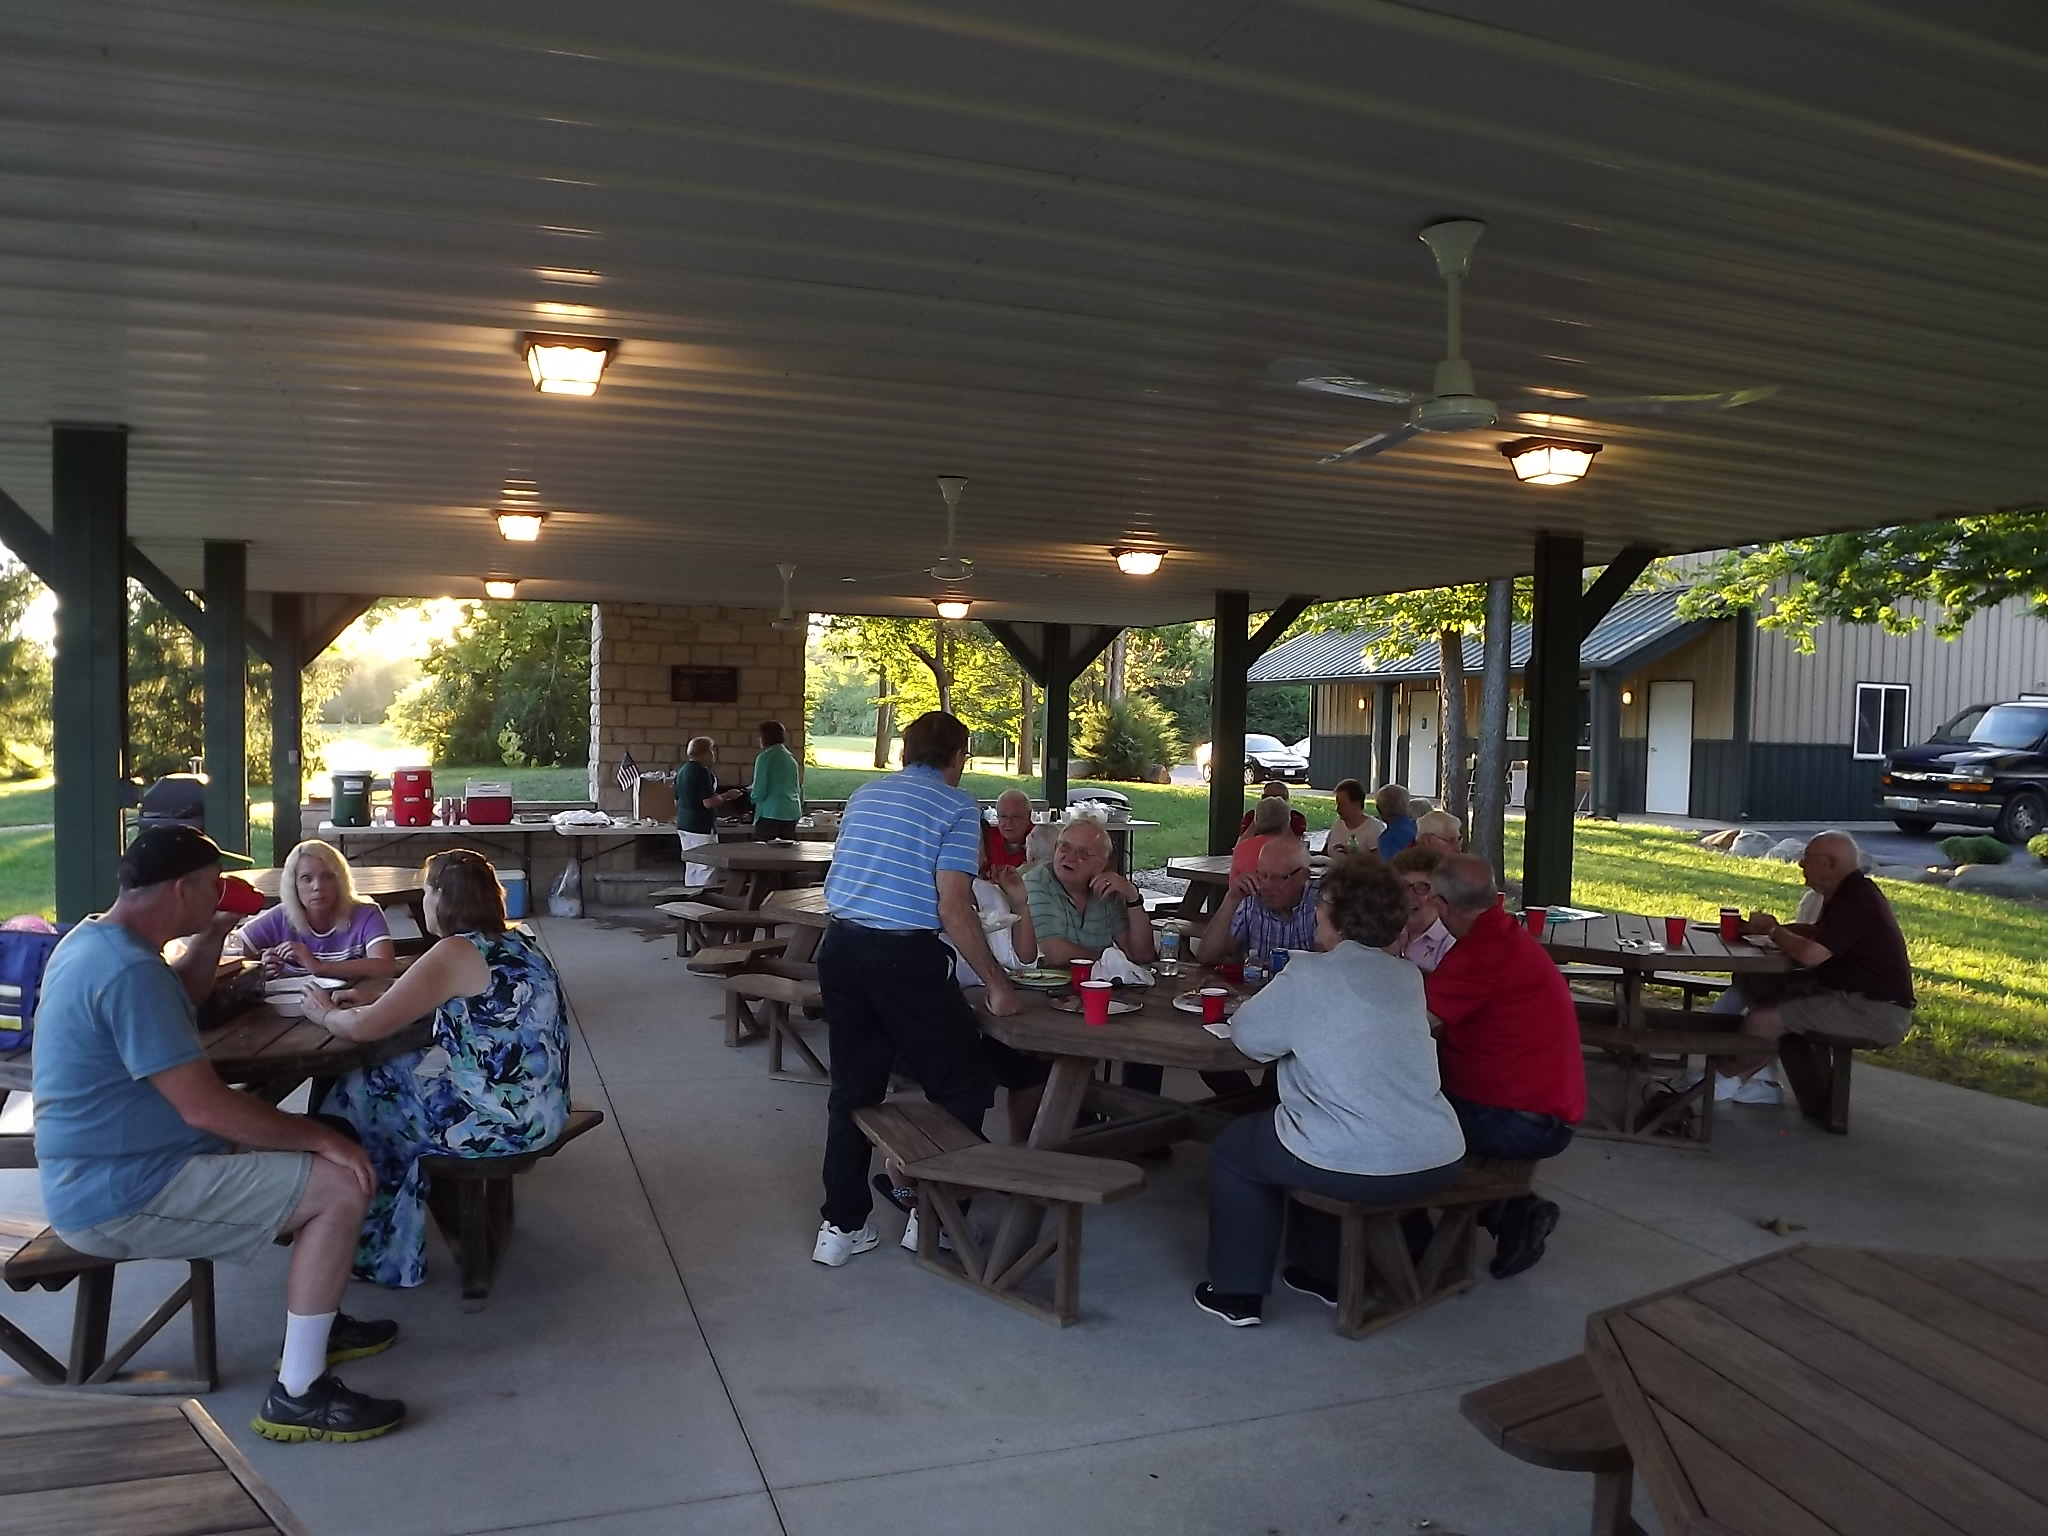 Another view of our September cookout.